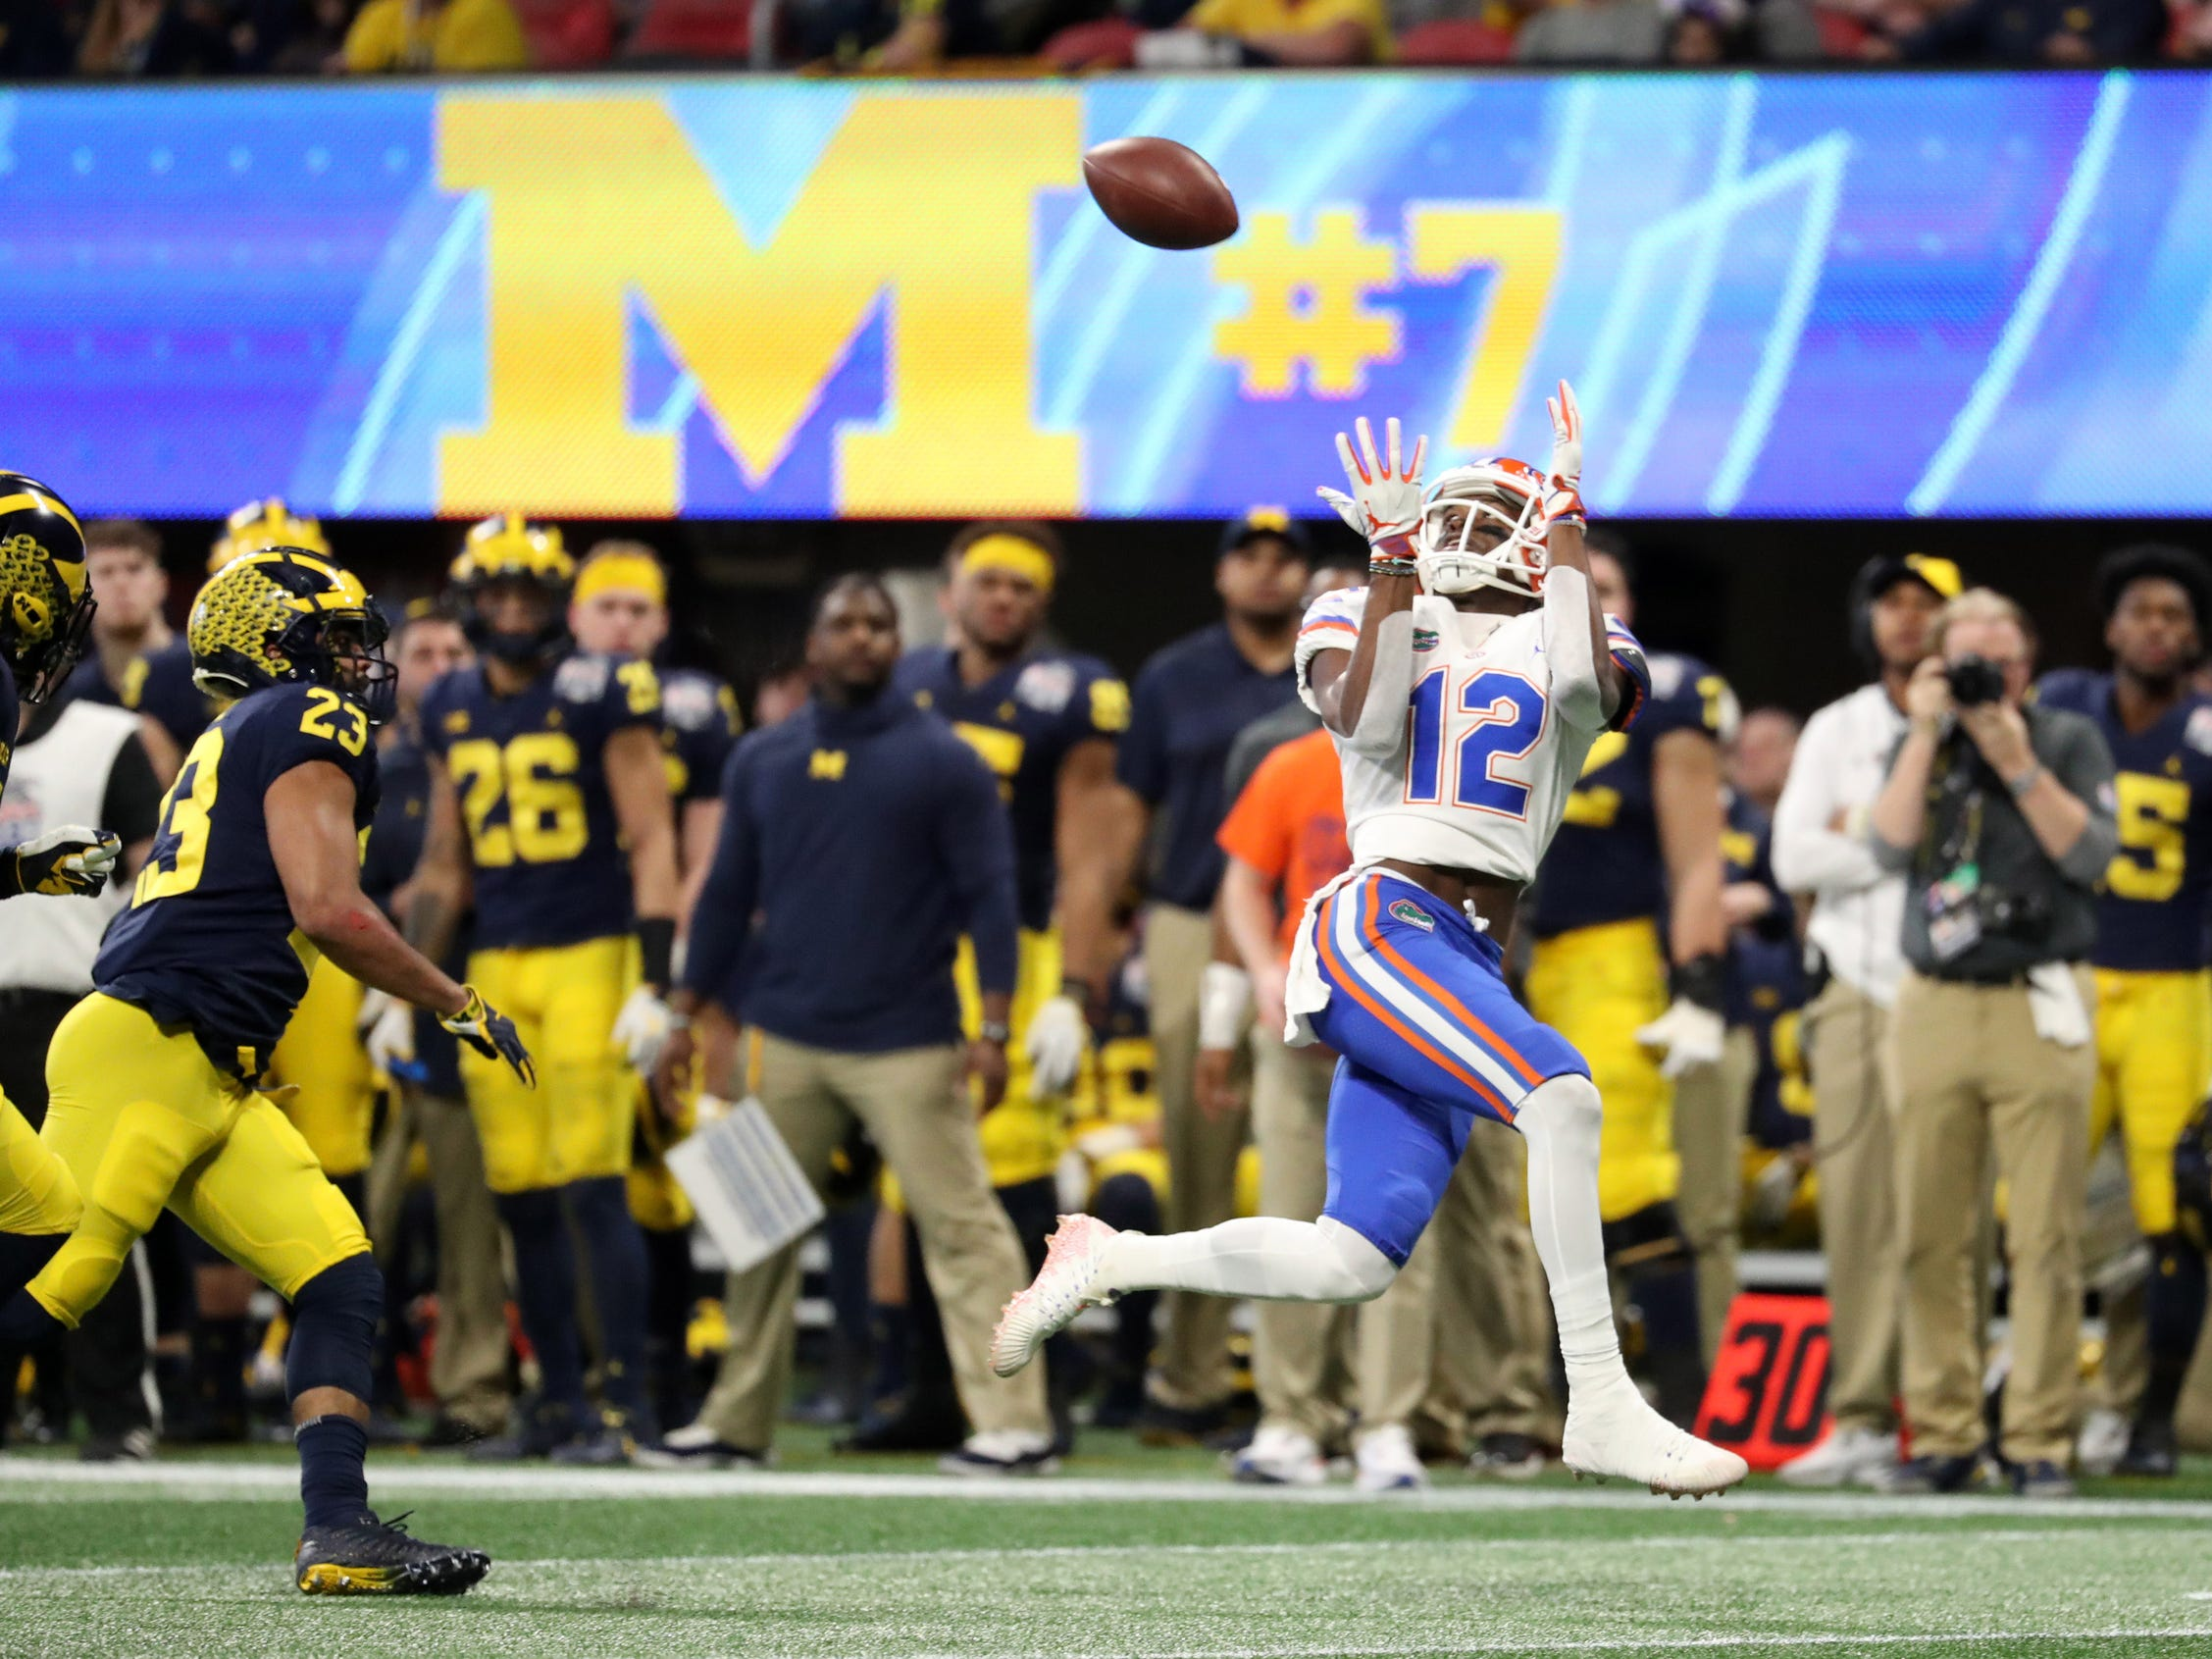 Florida wide receiver Van Jefferson makes a reception in the first quarter against Michigan during the first half of the Peach Bowl on Saturday, Dec. 29, 2018, in Atlanta.